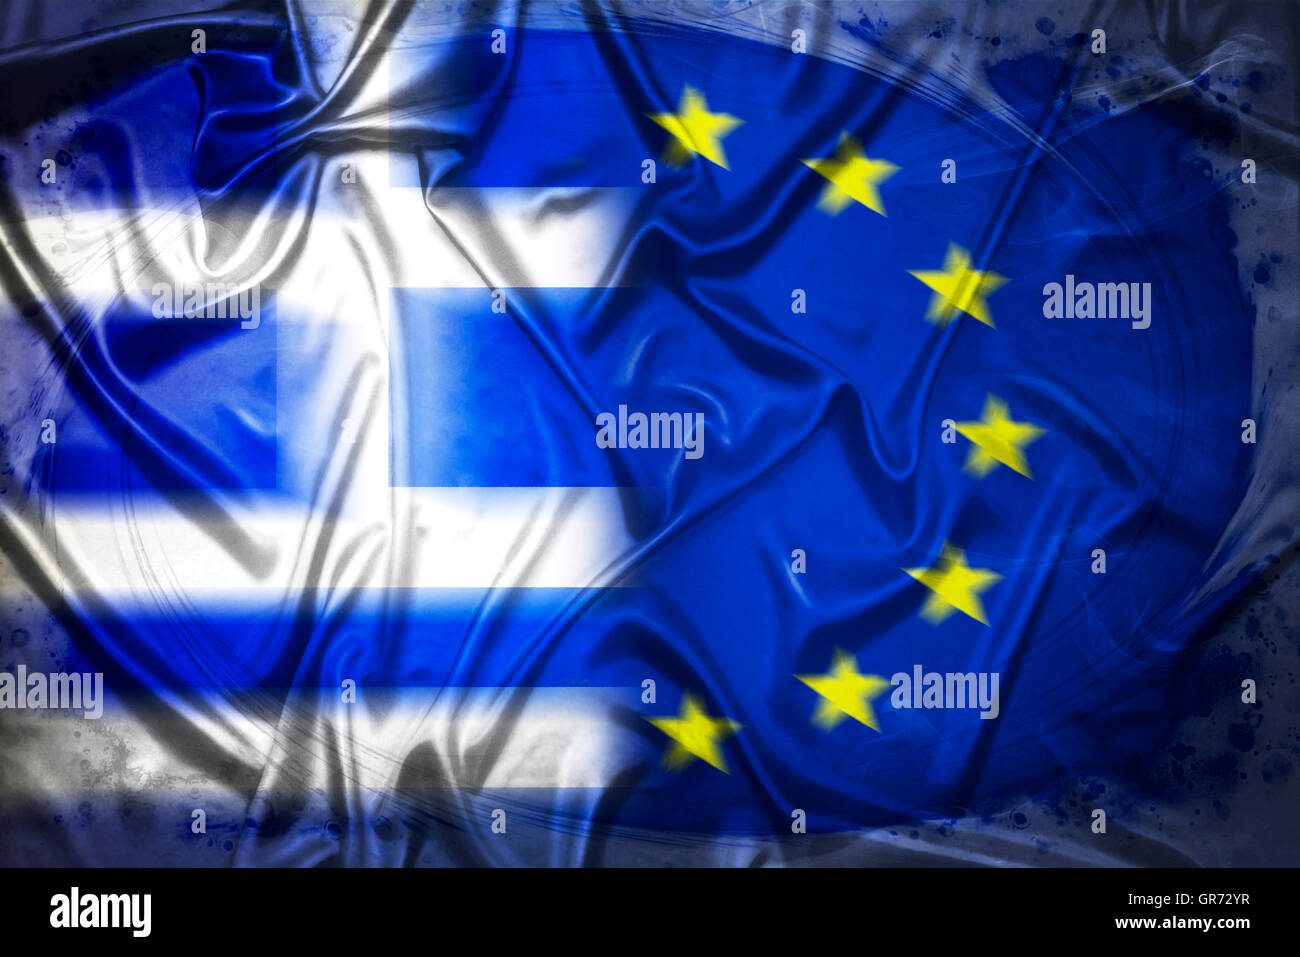 Flags Of Greece And The Eu, Greek Debt Crisis - Stock Image